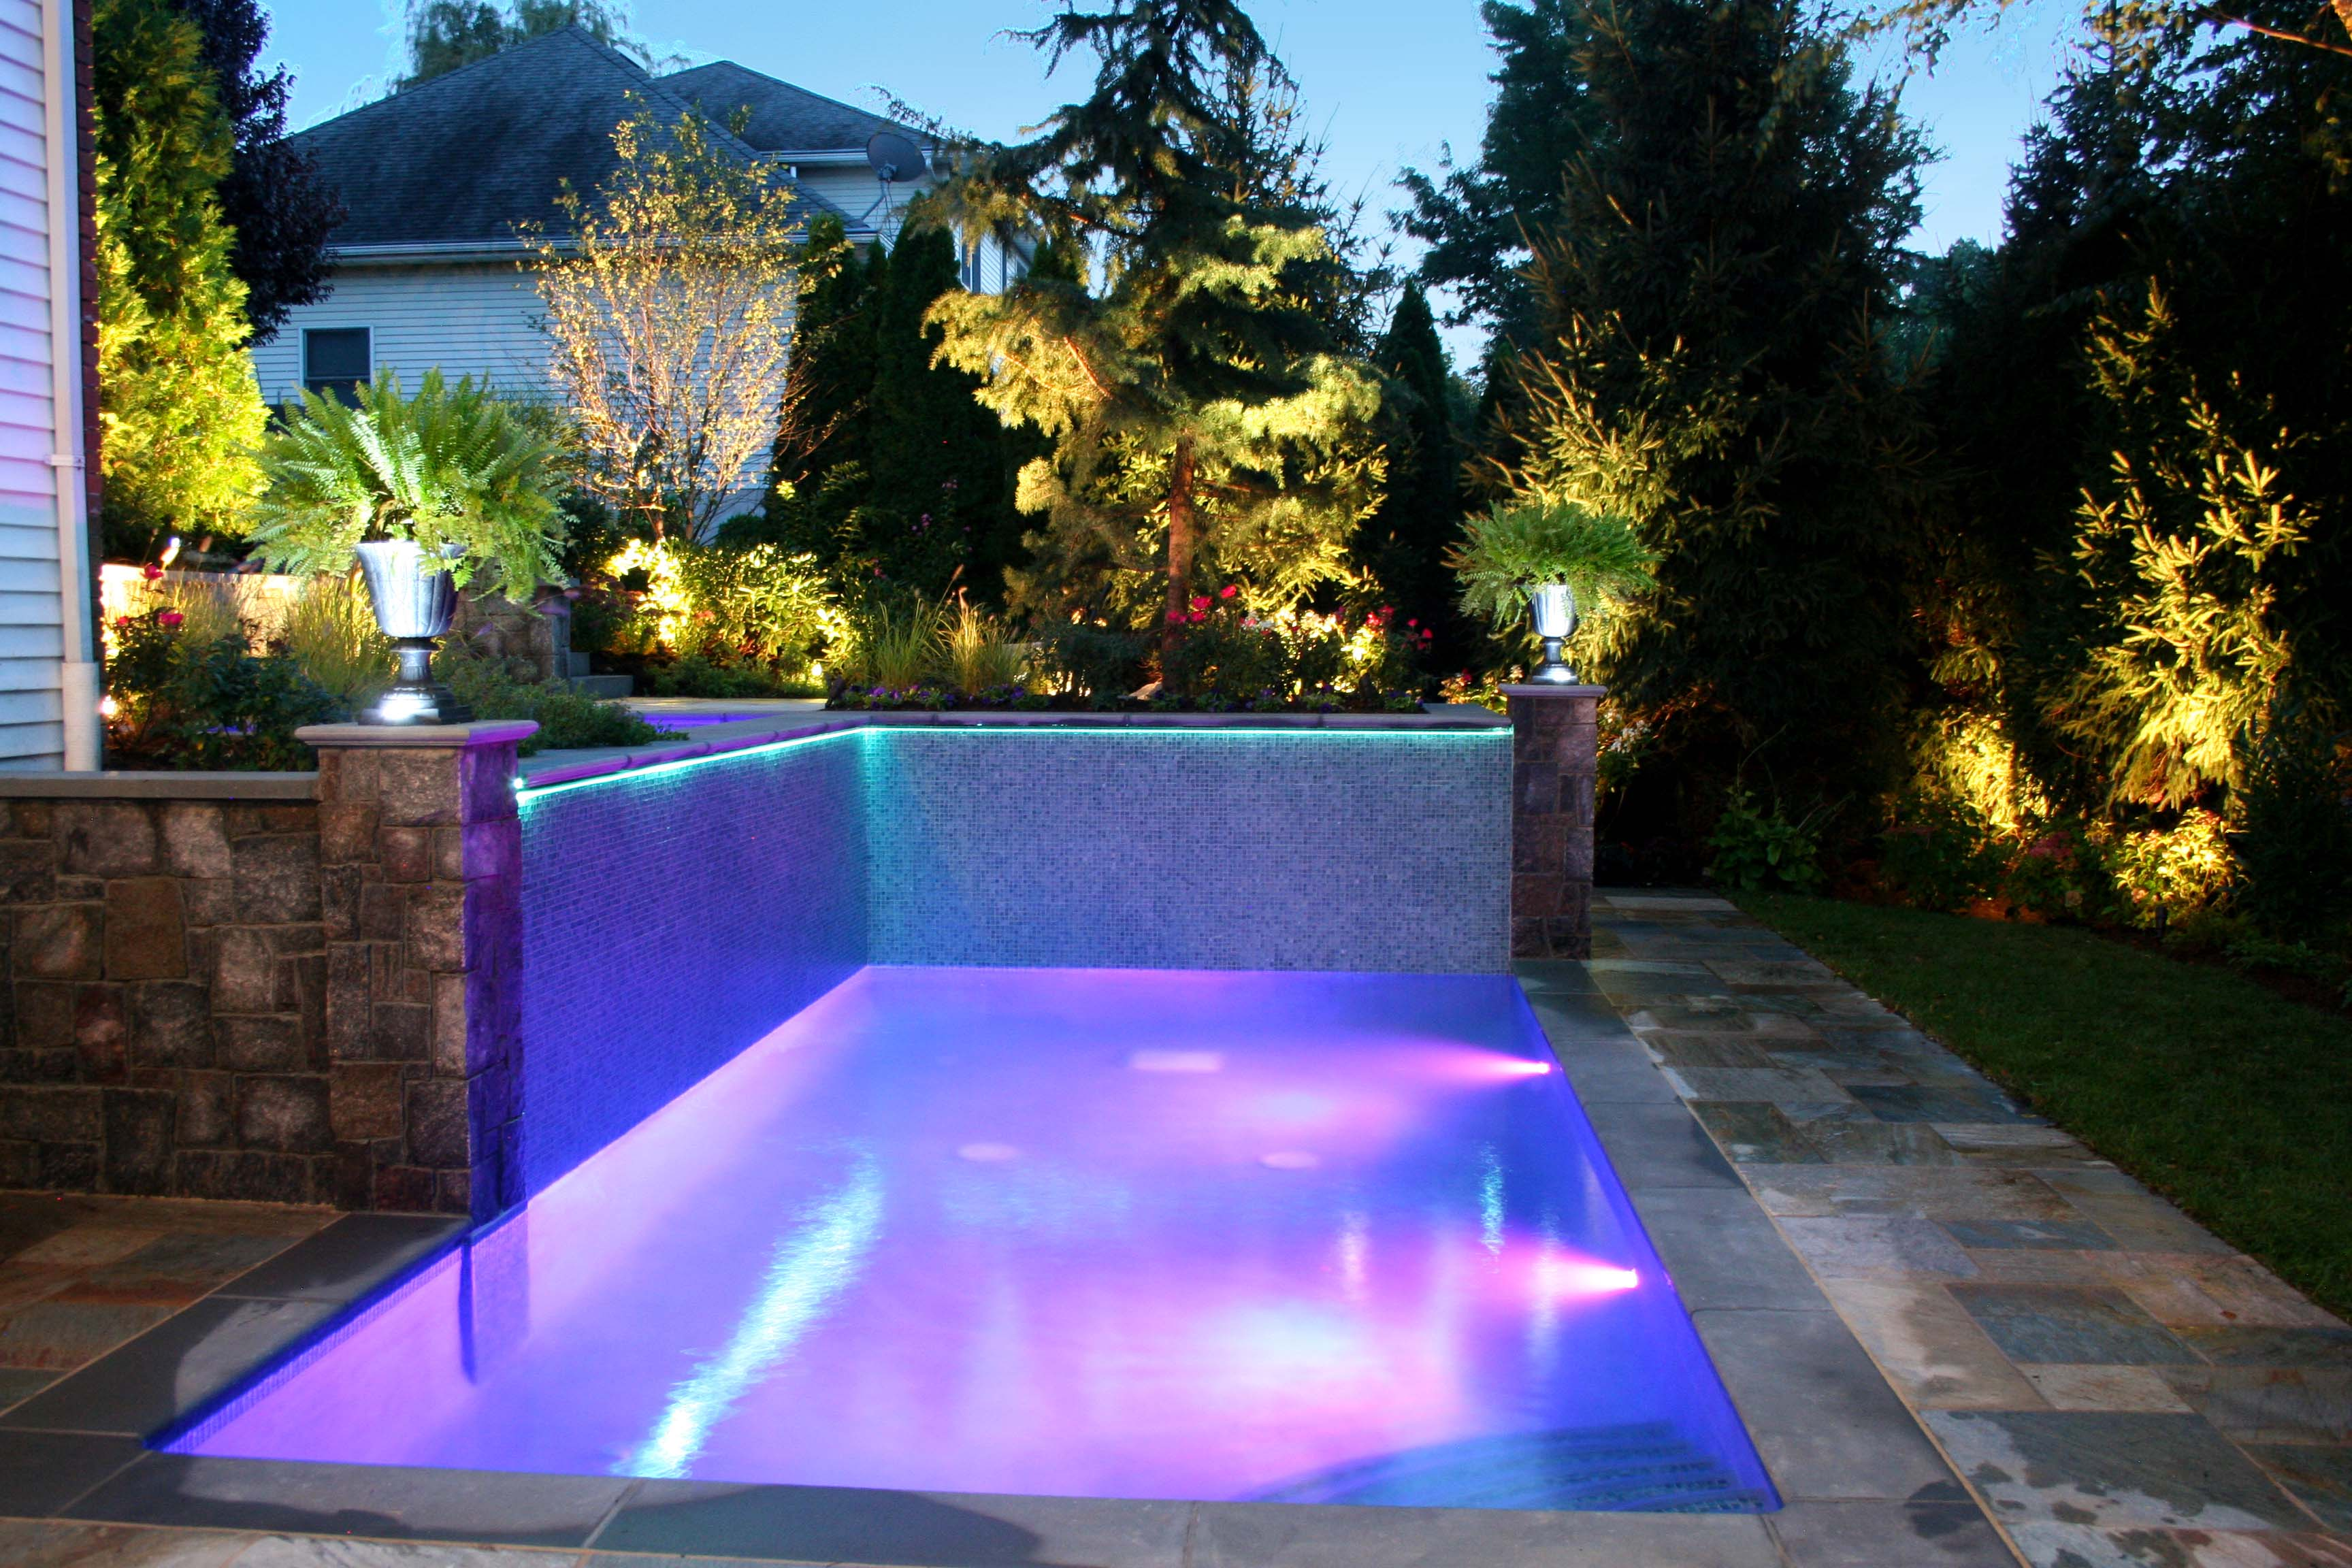 Glass tile swimming pool designs earn new jersey based for Garden pool designs ideas